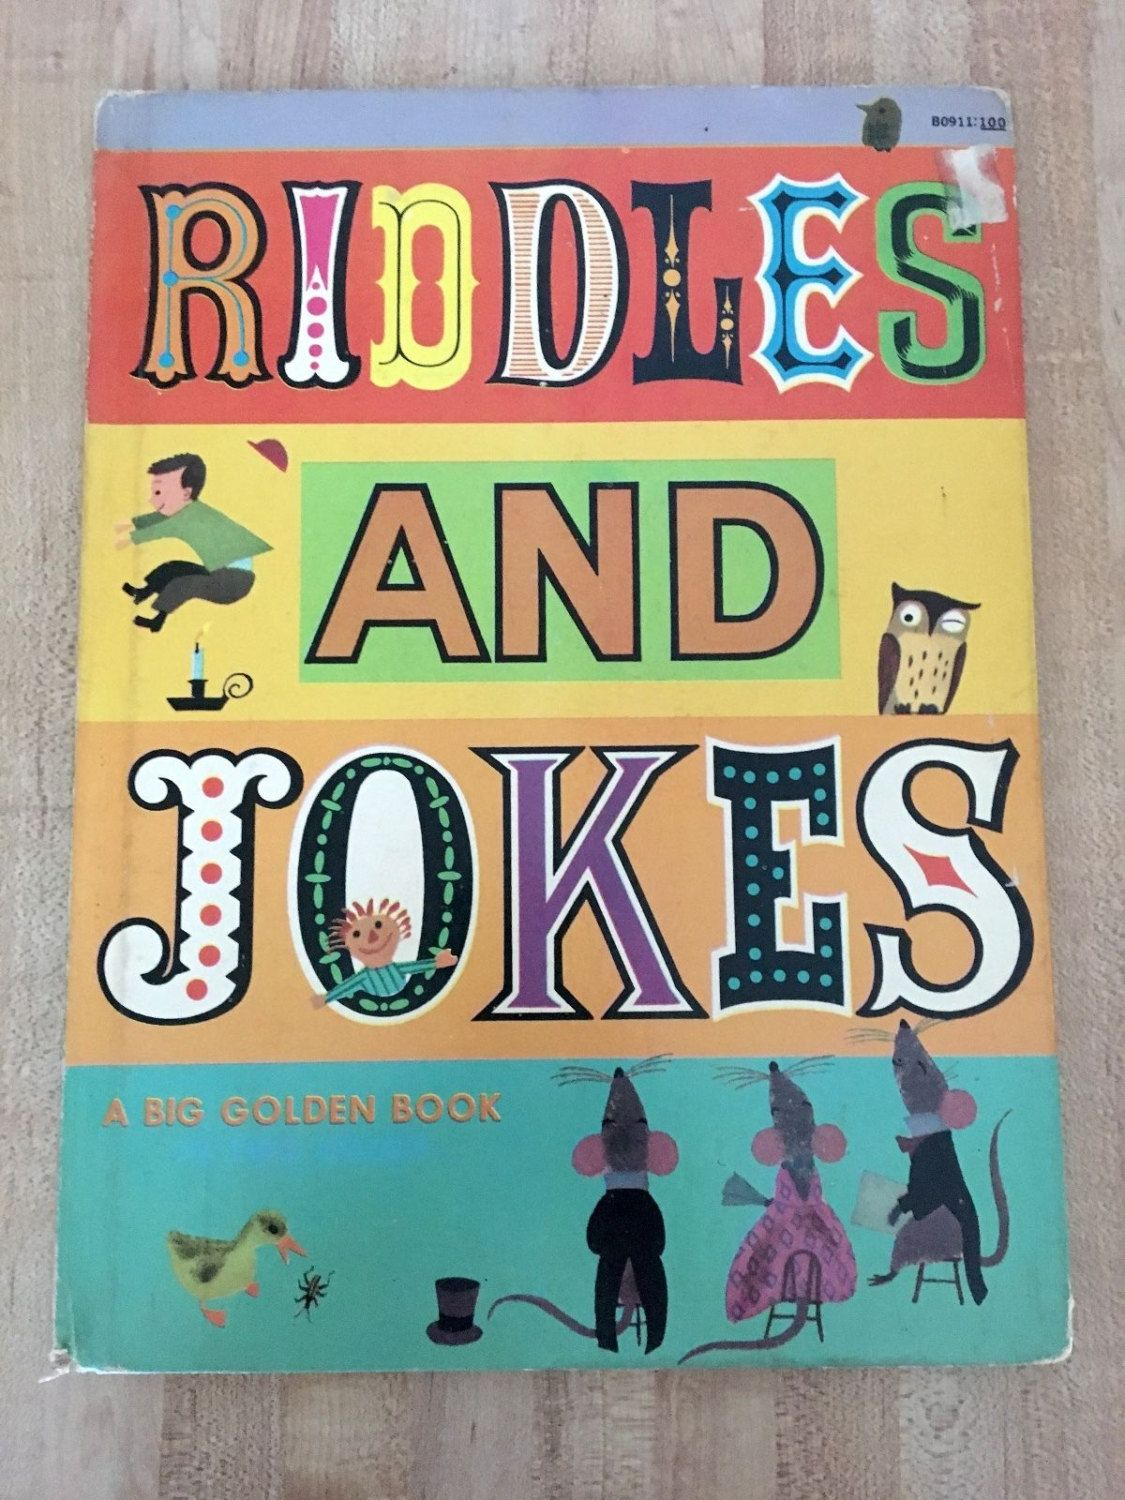 Riddles and Jokes by Gertrude Crampton a Children's